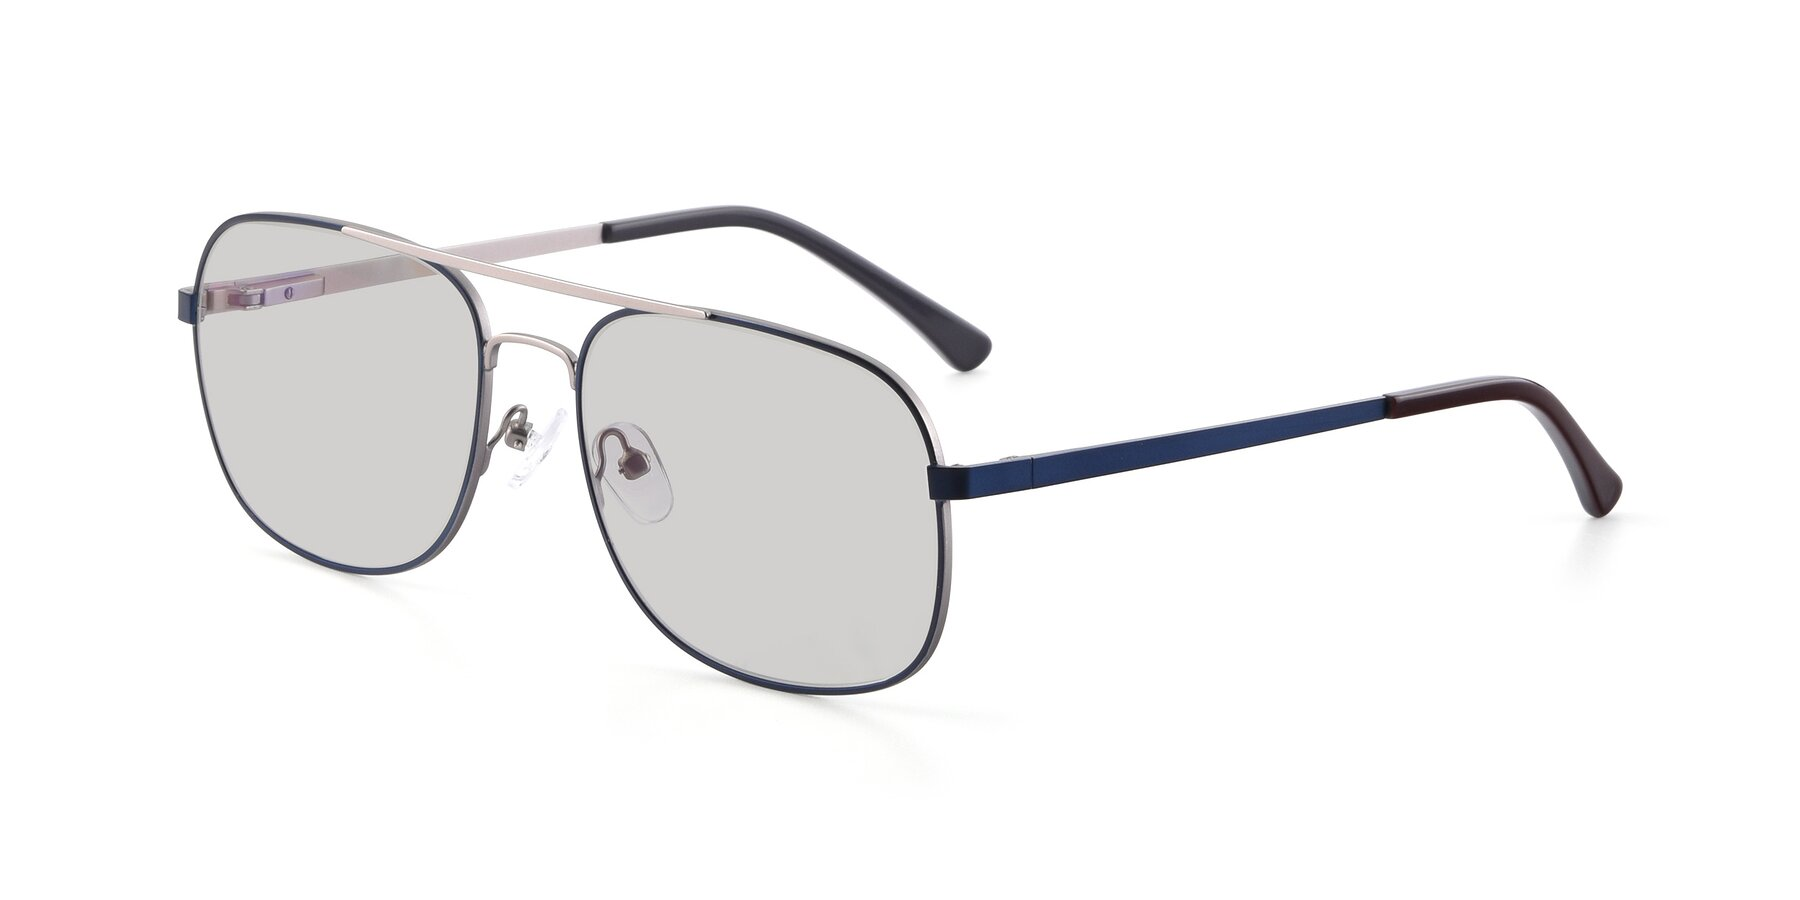 Angle of 9487 in Blue-Silver with Light Gray Tinted Lenses